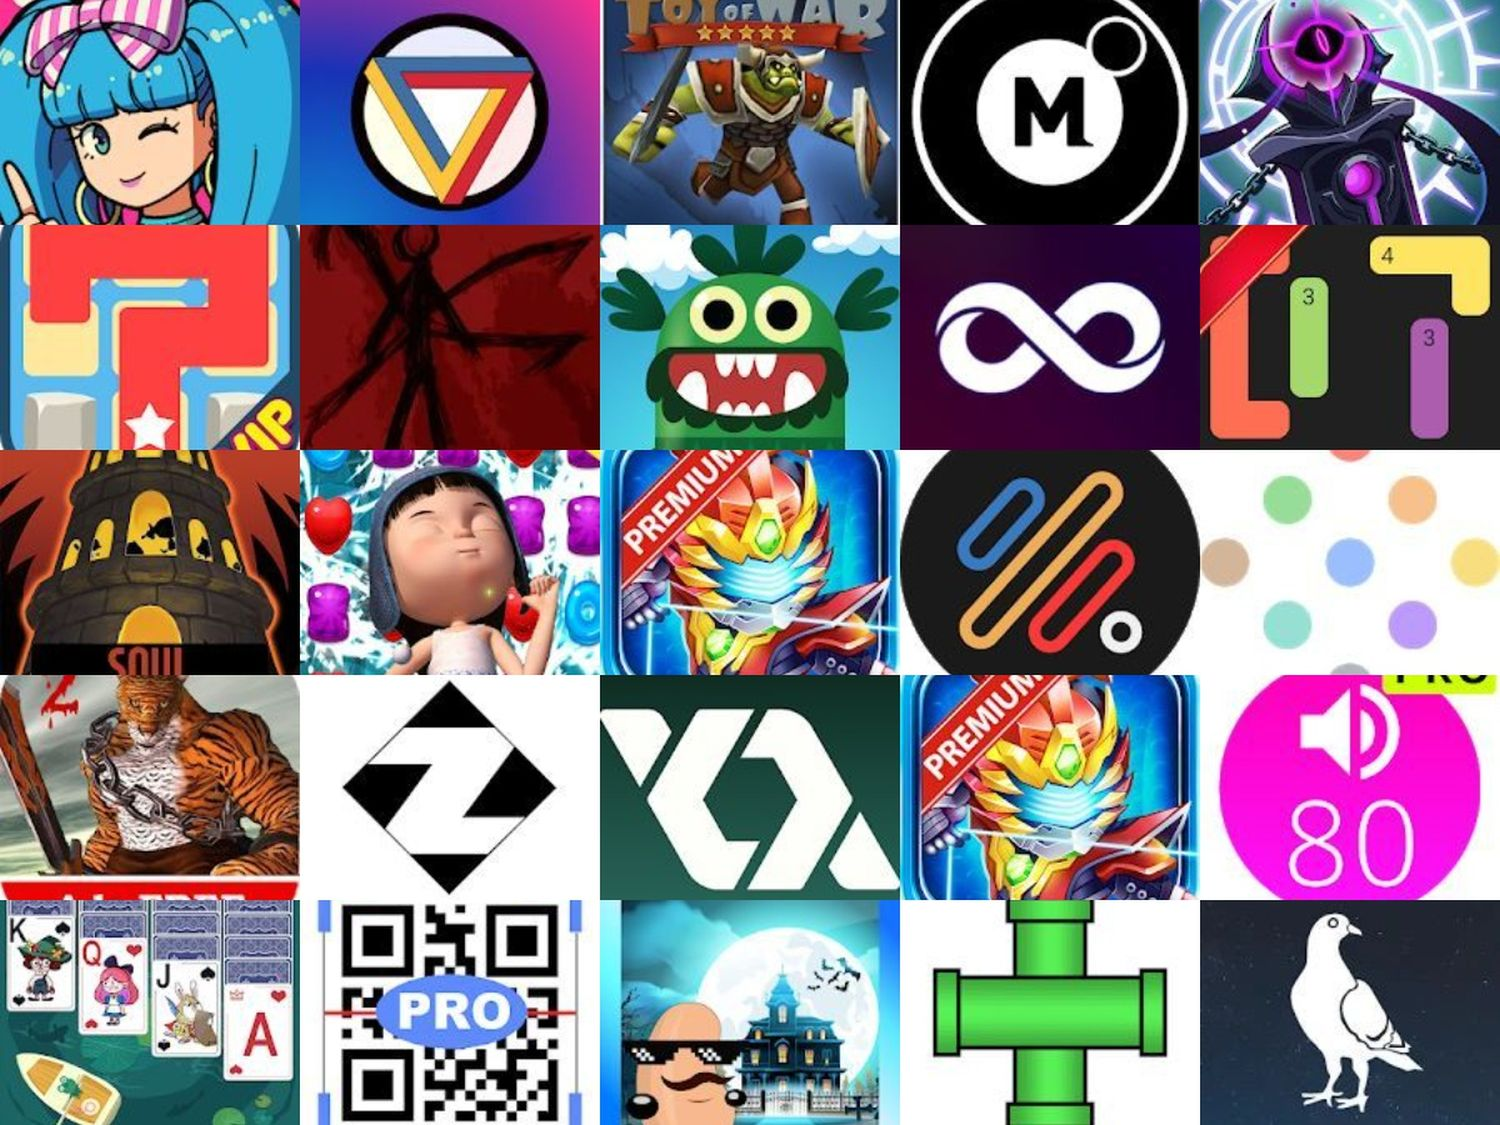 apps 20.09.2020